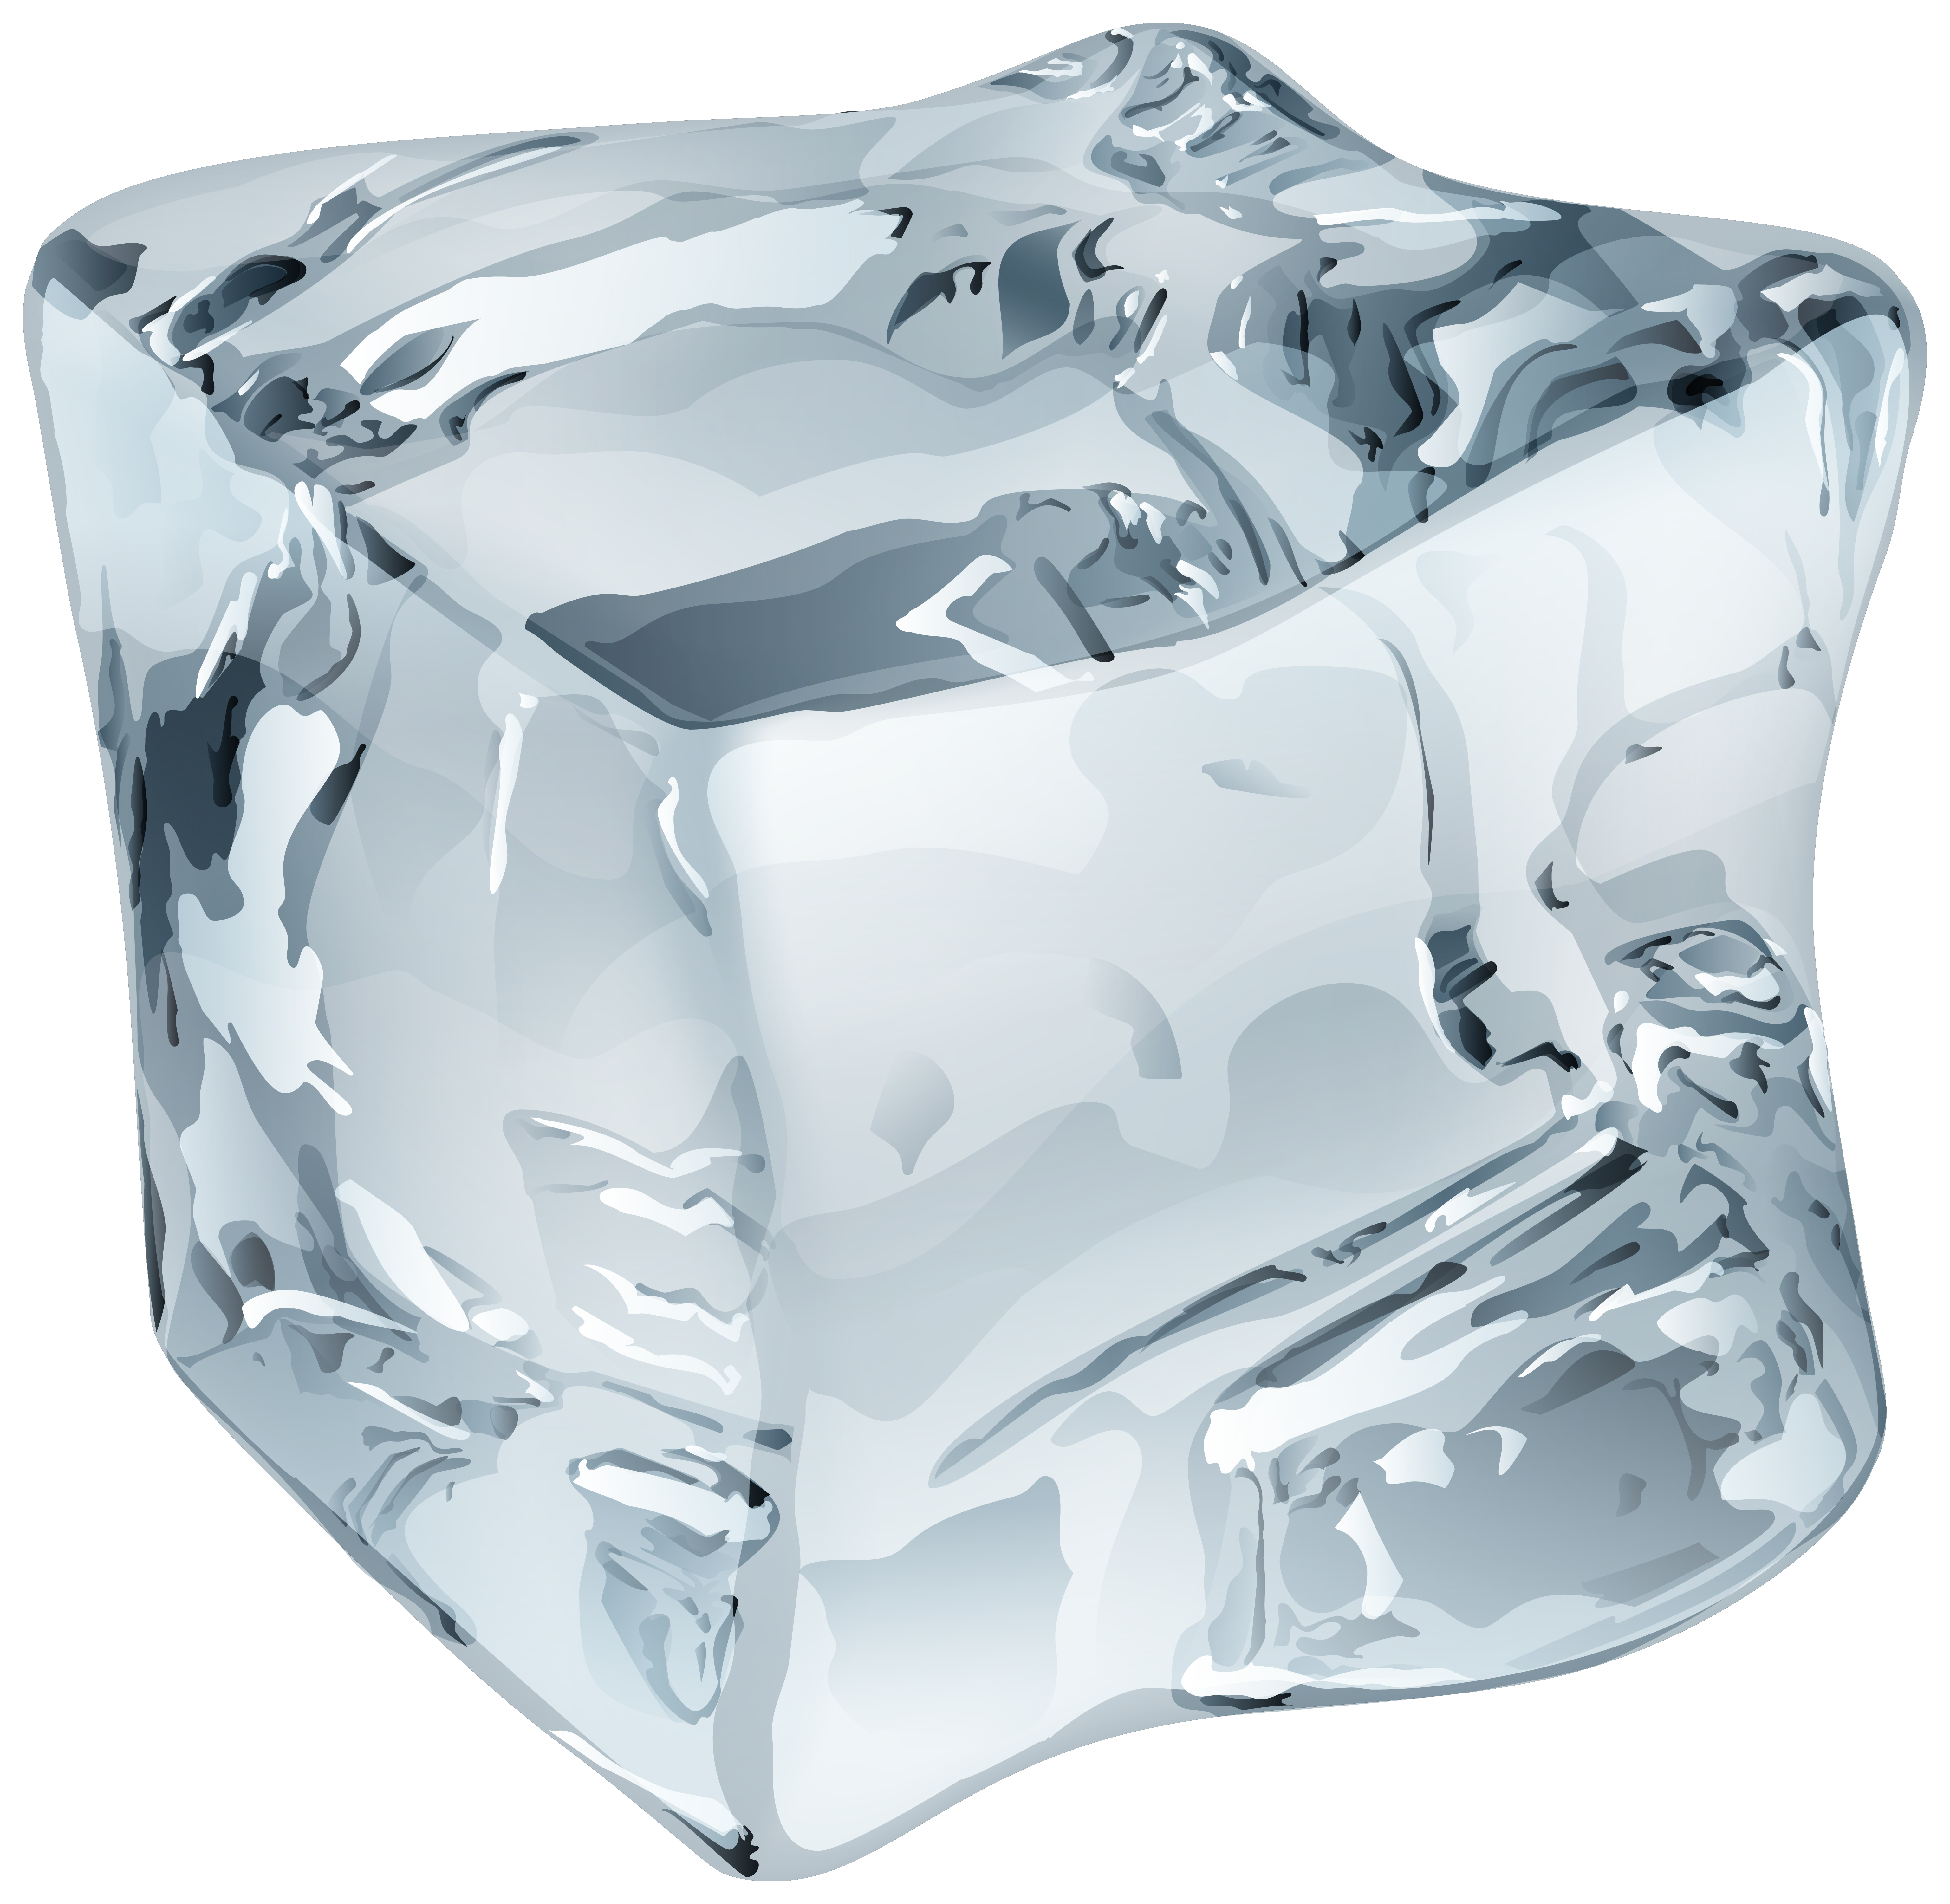 Ice Cube clipart cute Ice WEB Art PNG Large